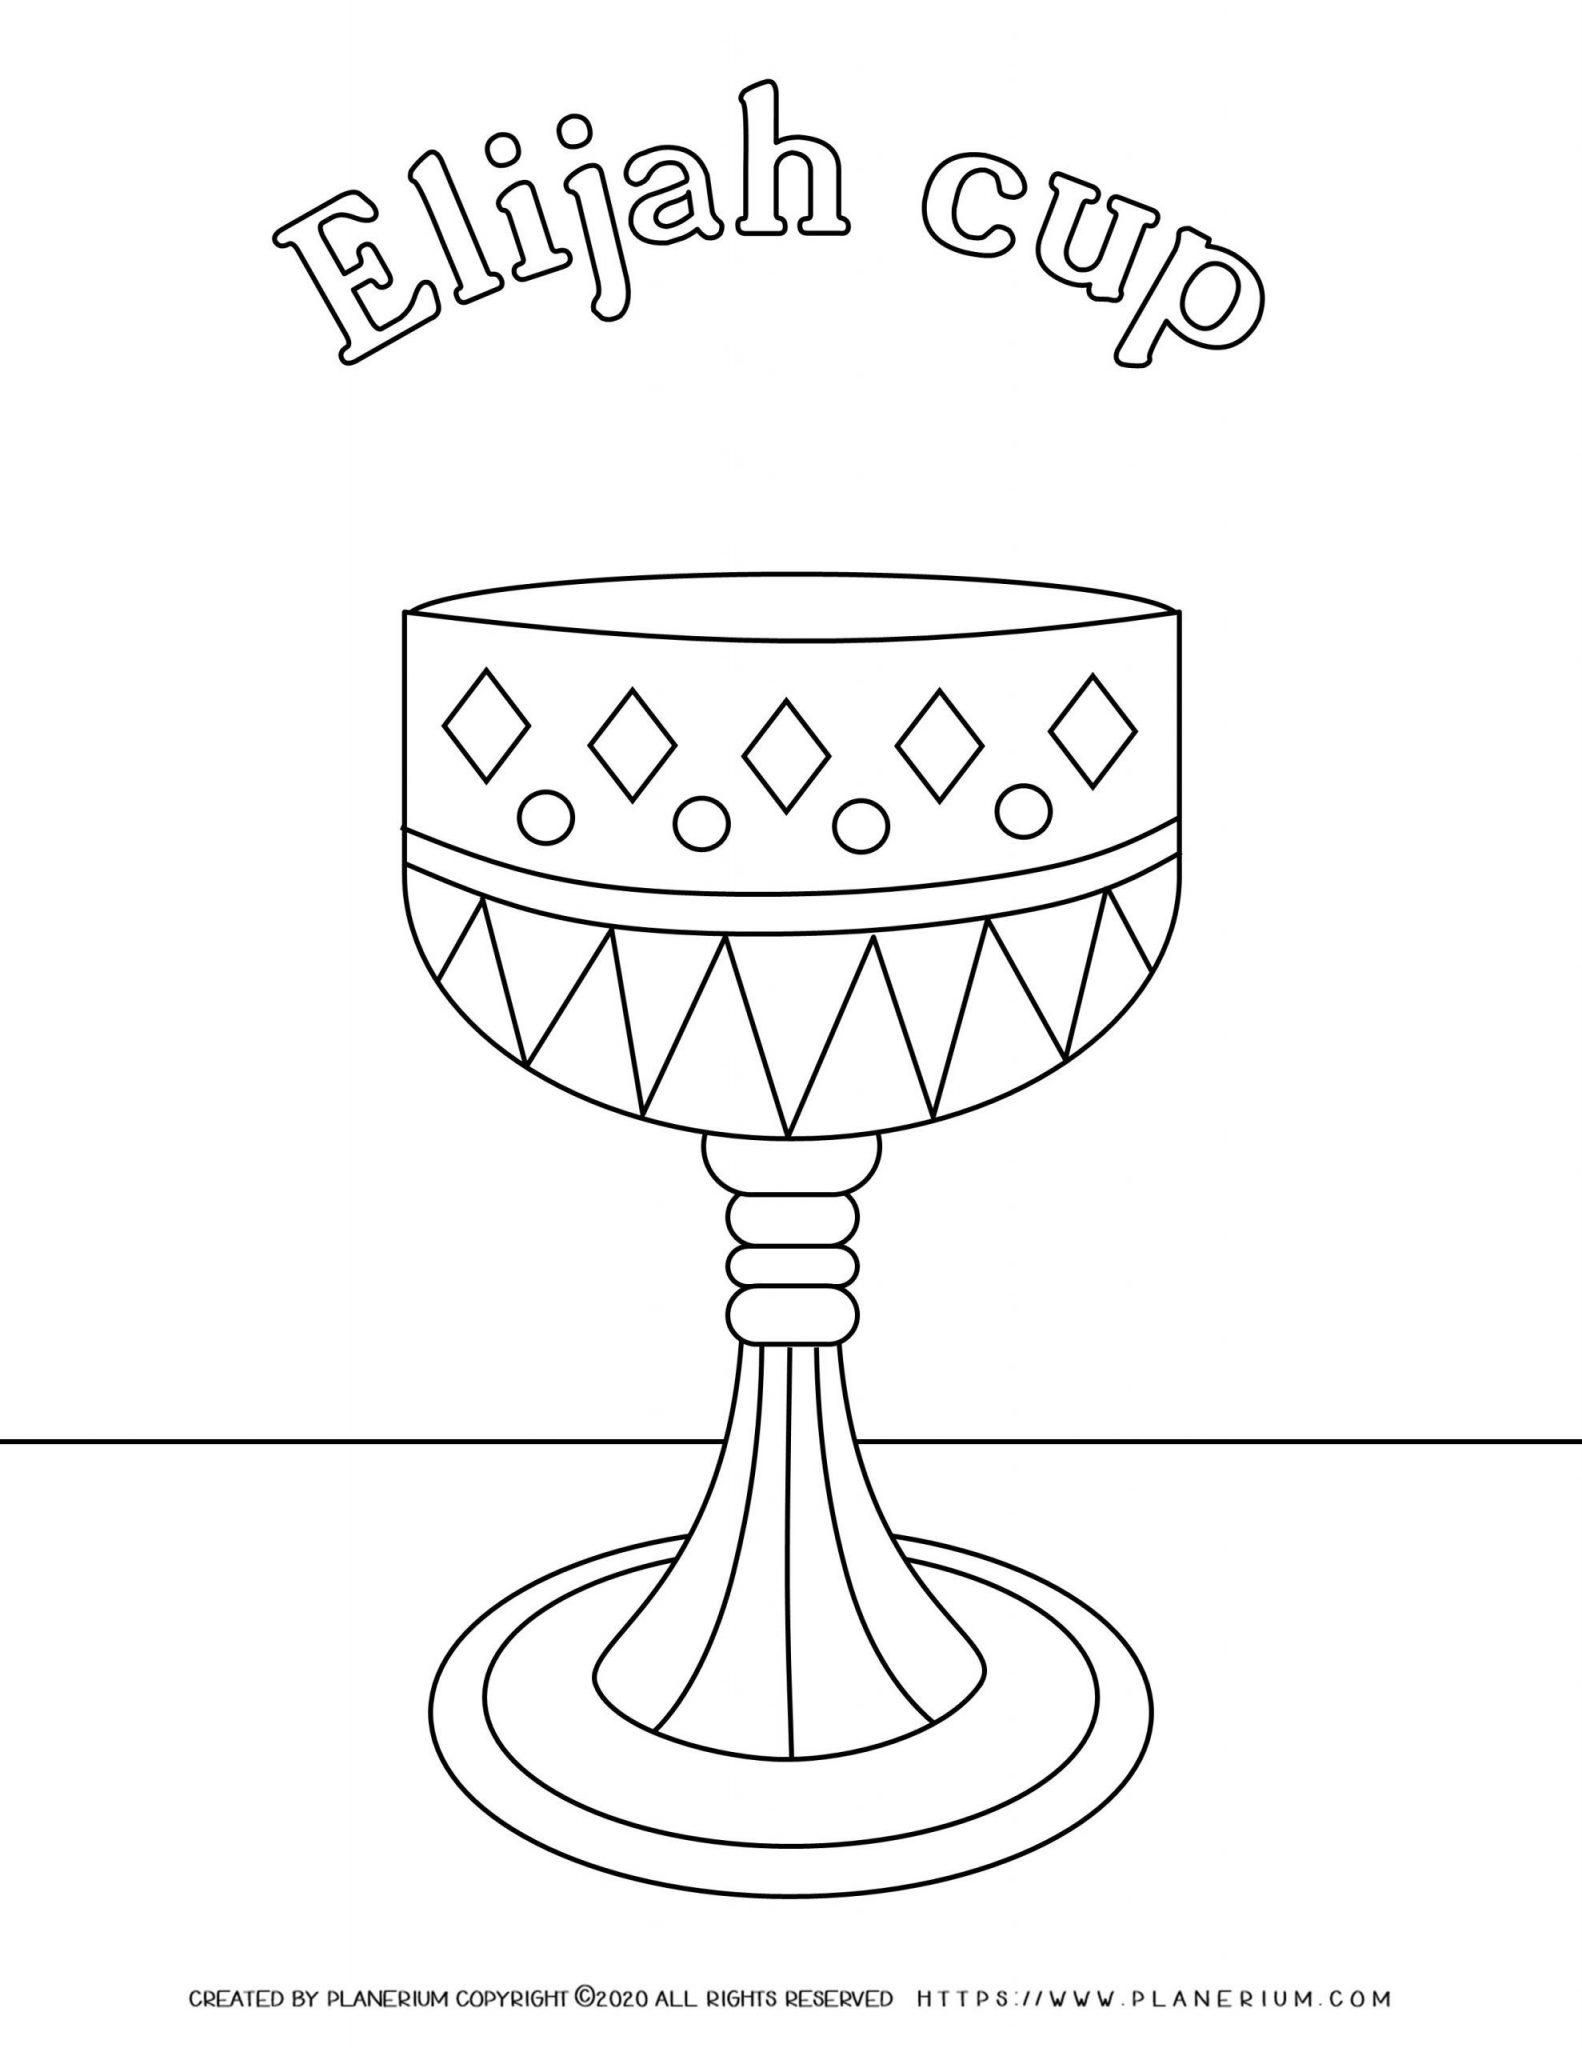 Passover coloring page - Elijah cup with English title